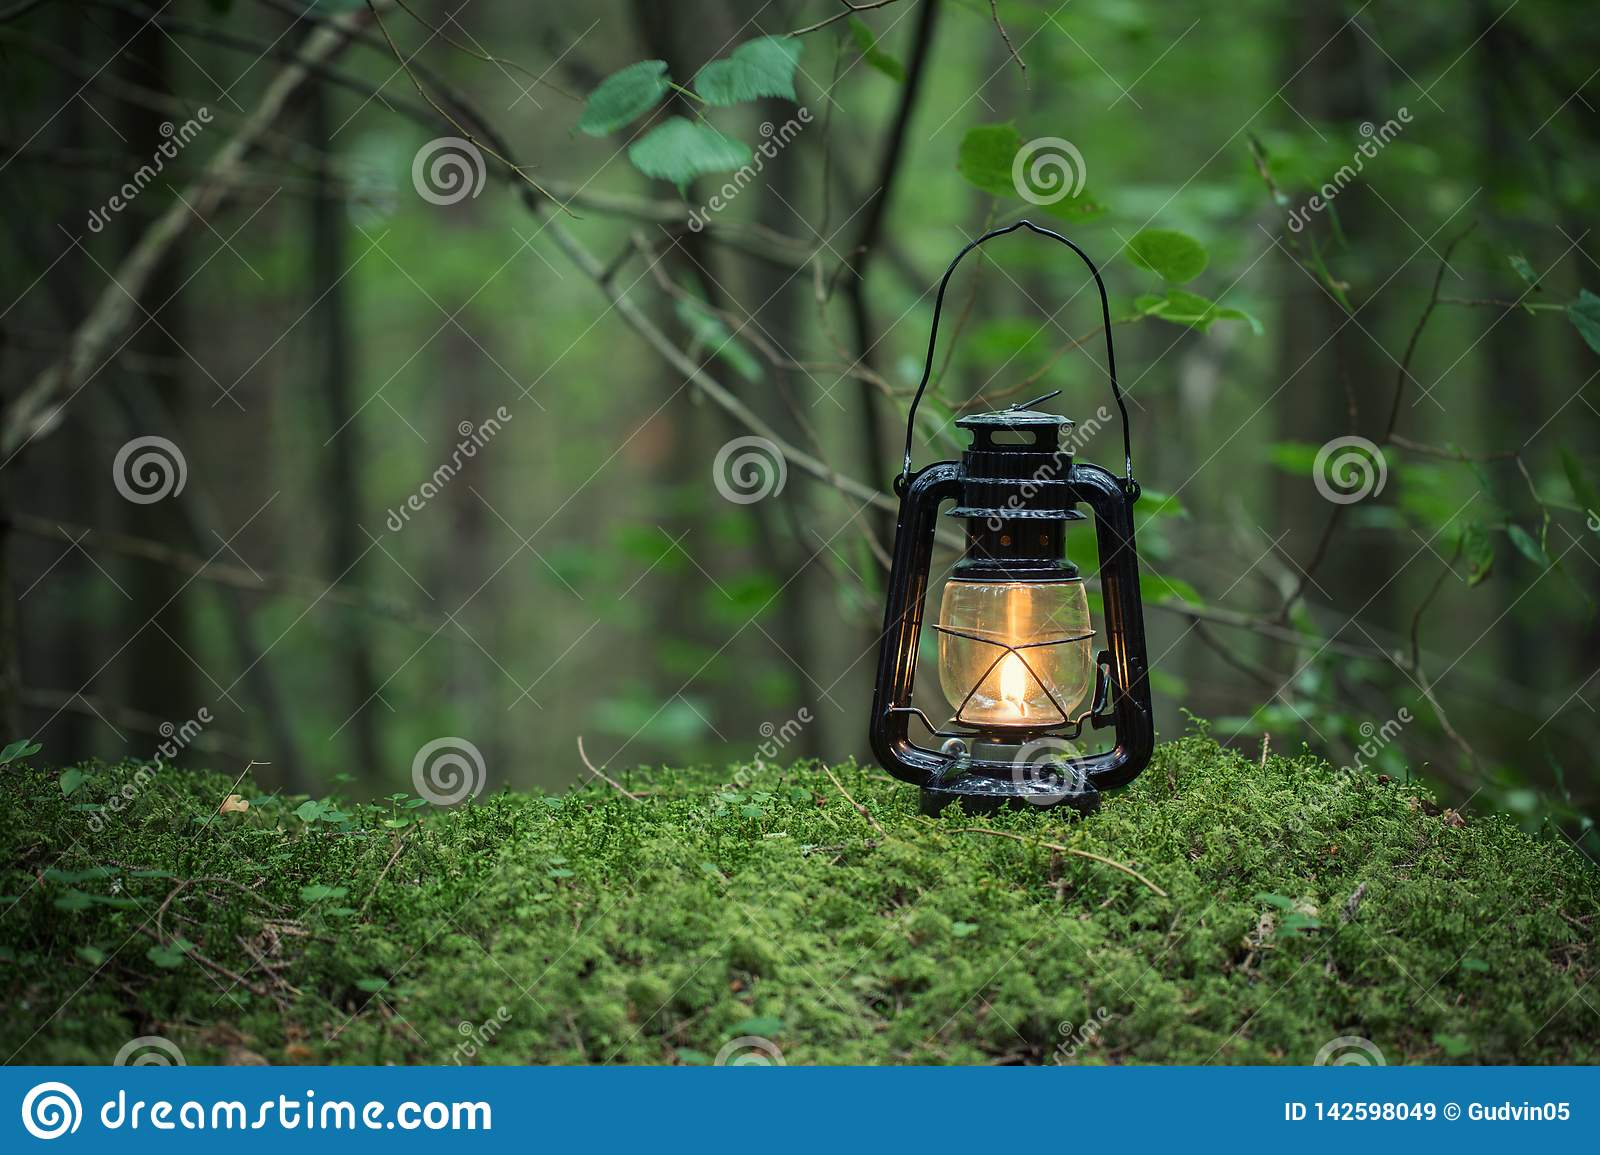 Oil lamp on the ground in nature